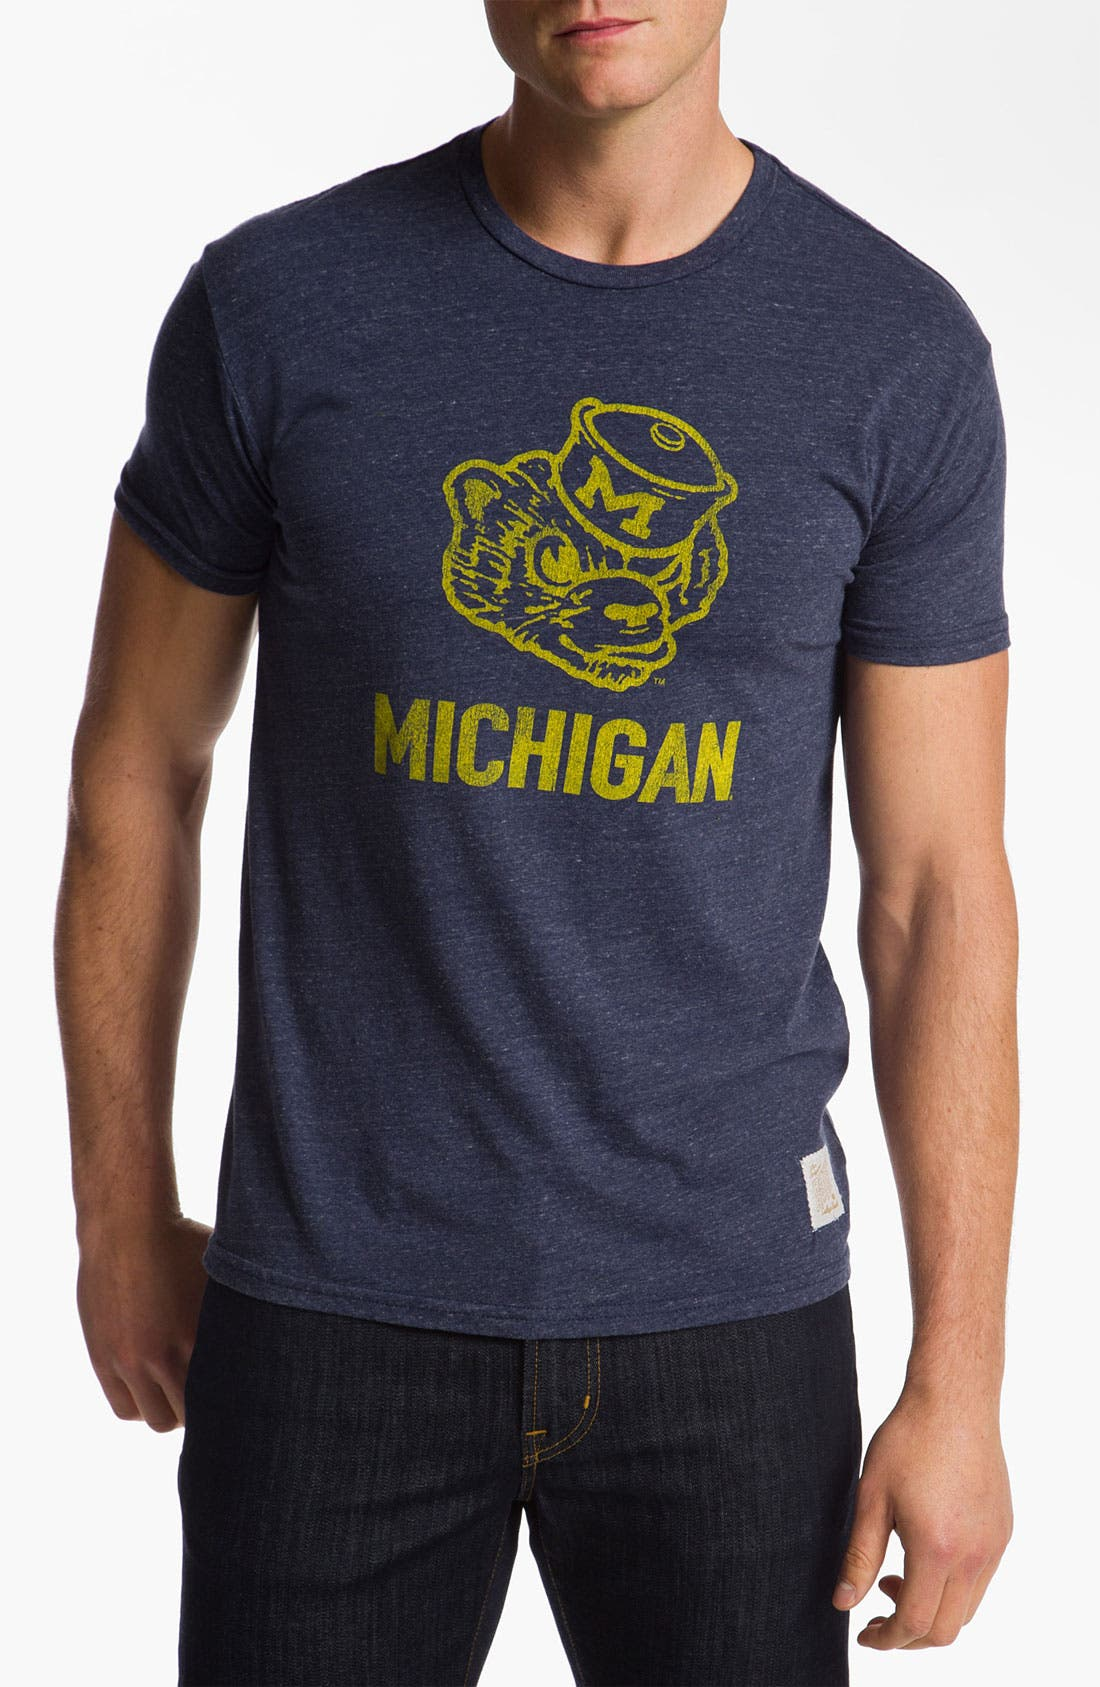 Alternate Image 1 Selected - The Original Retro Brand 'University of Michigan Wolverines - Stitch' T-Shirt